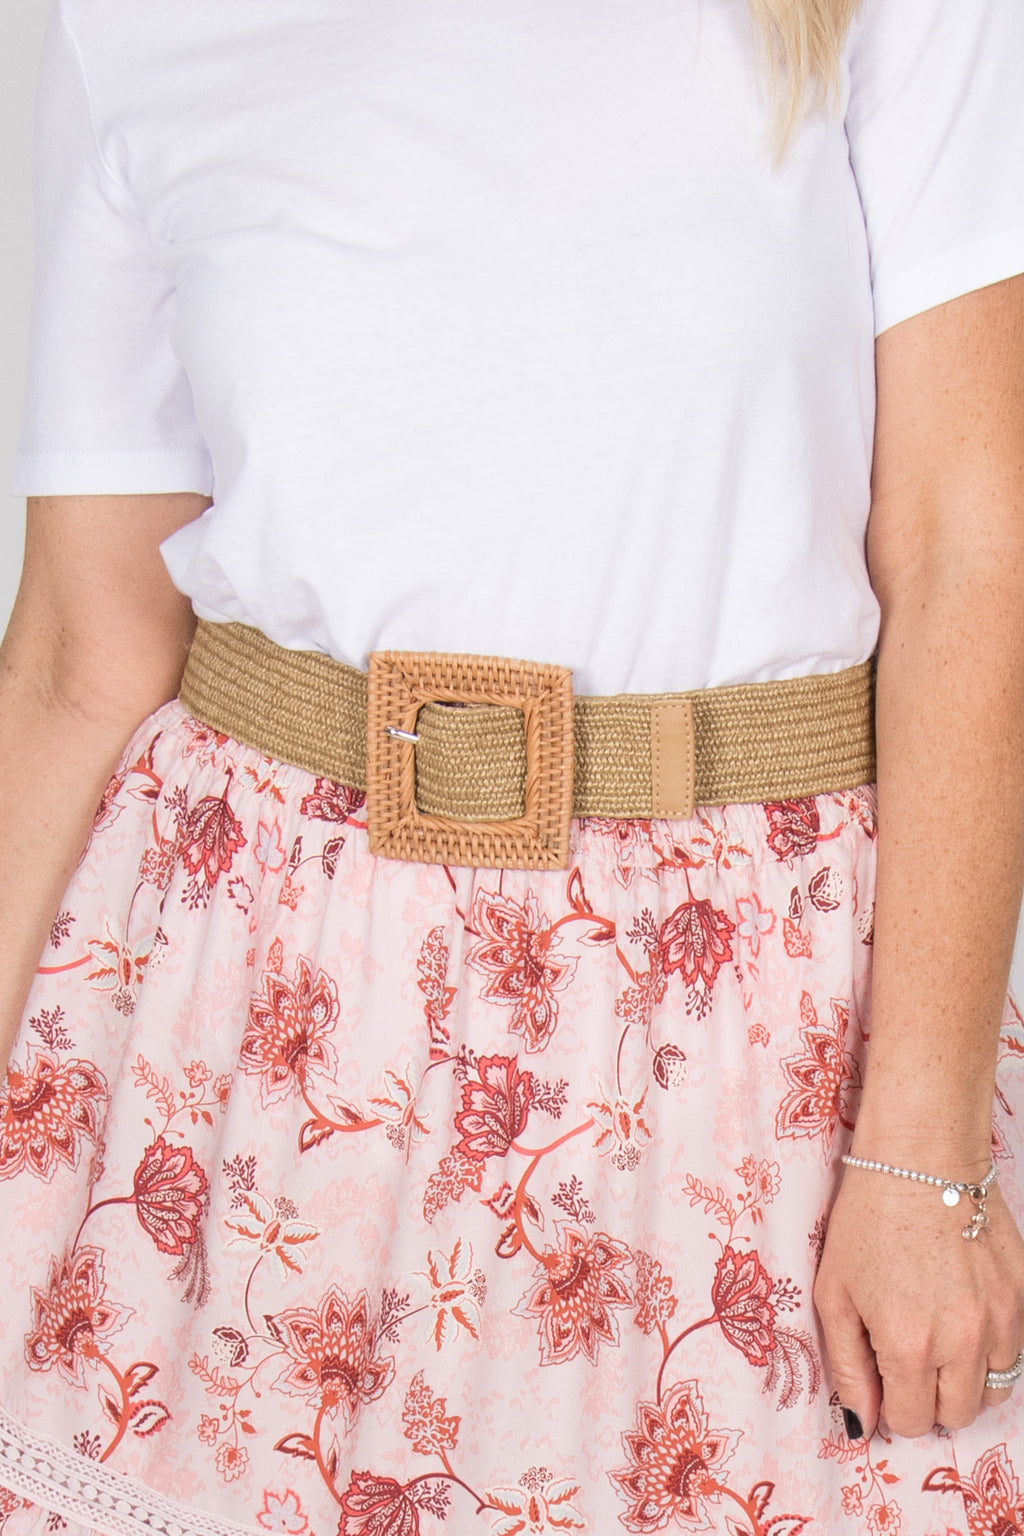 Remi Stretch Belt in Natural Square